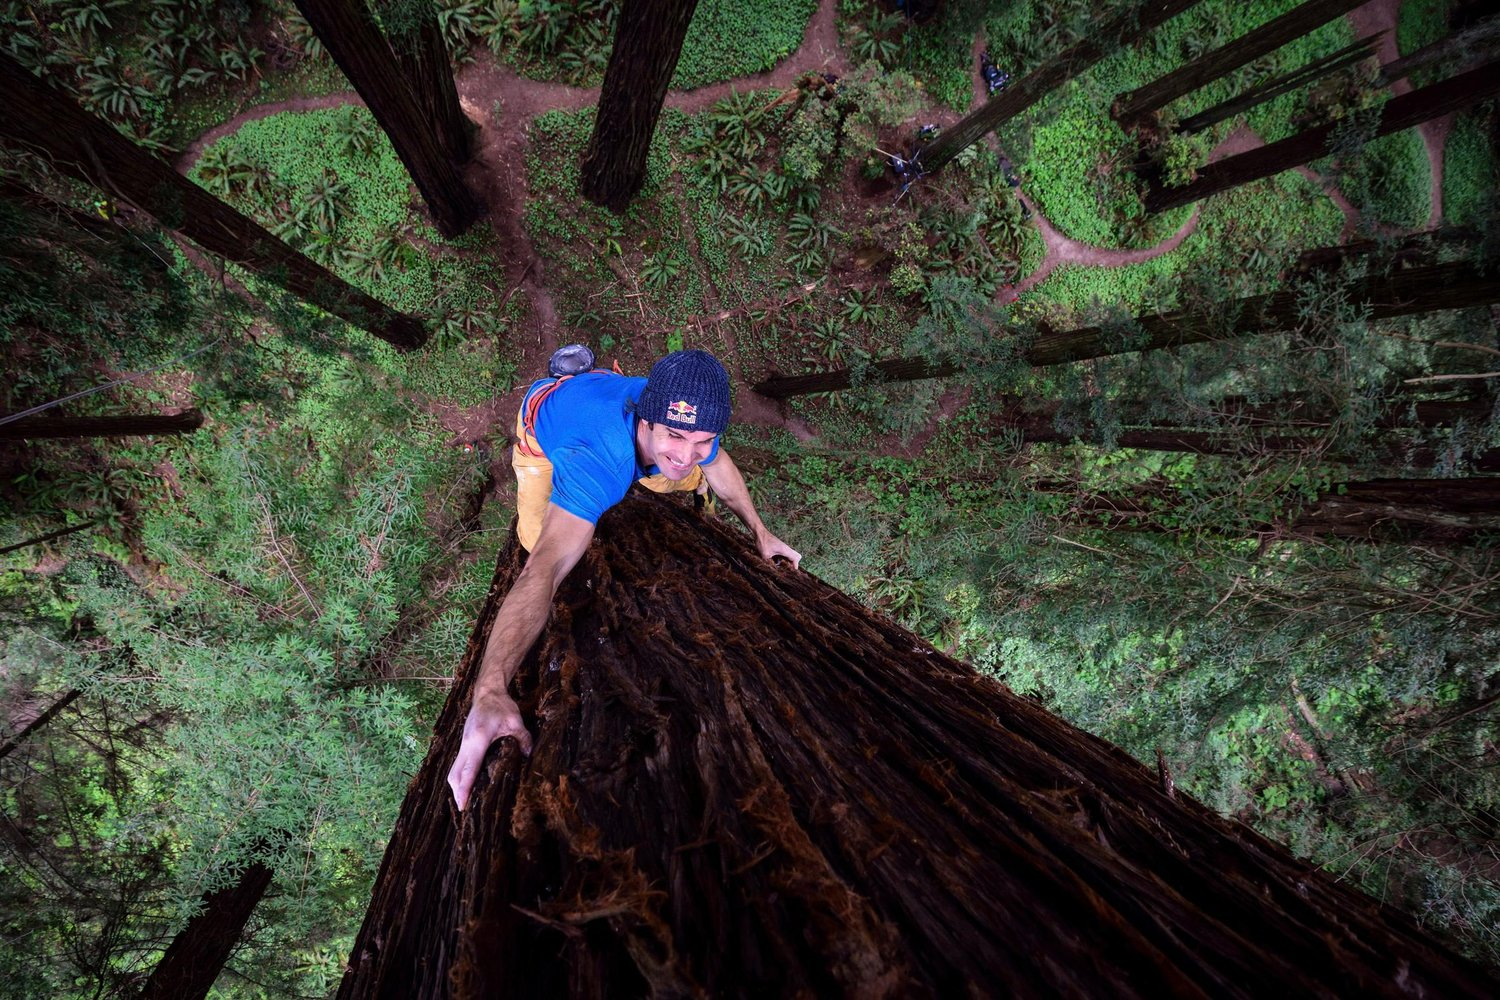 Chris Sharma Climbs Redwood Tree for Giant Ascent 1500x1000